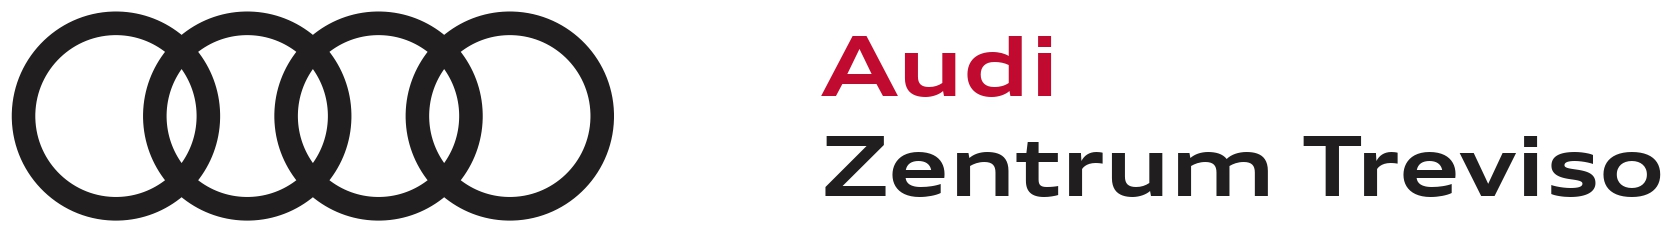 Audi Zentrum Treviso